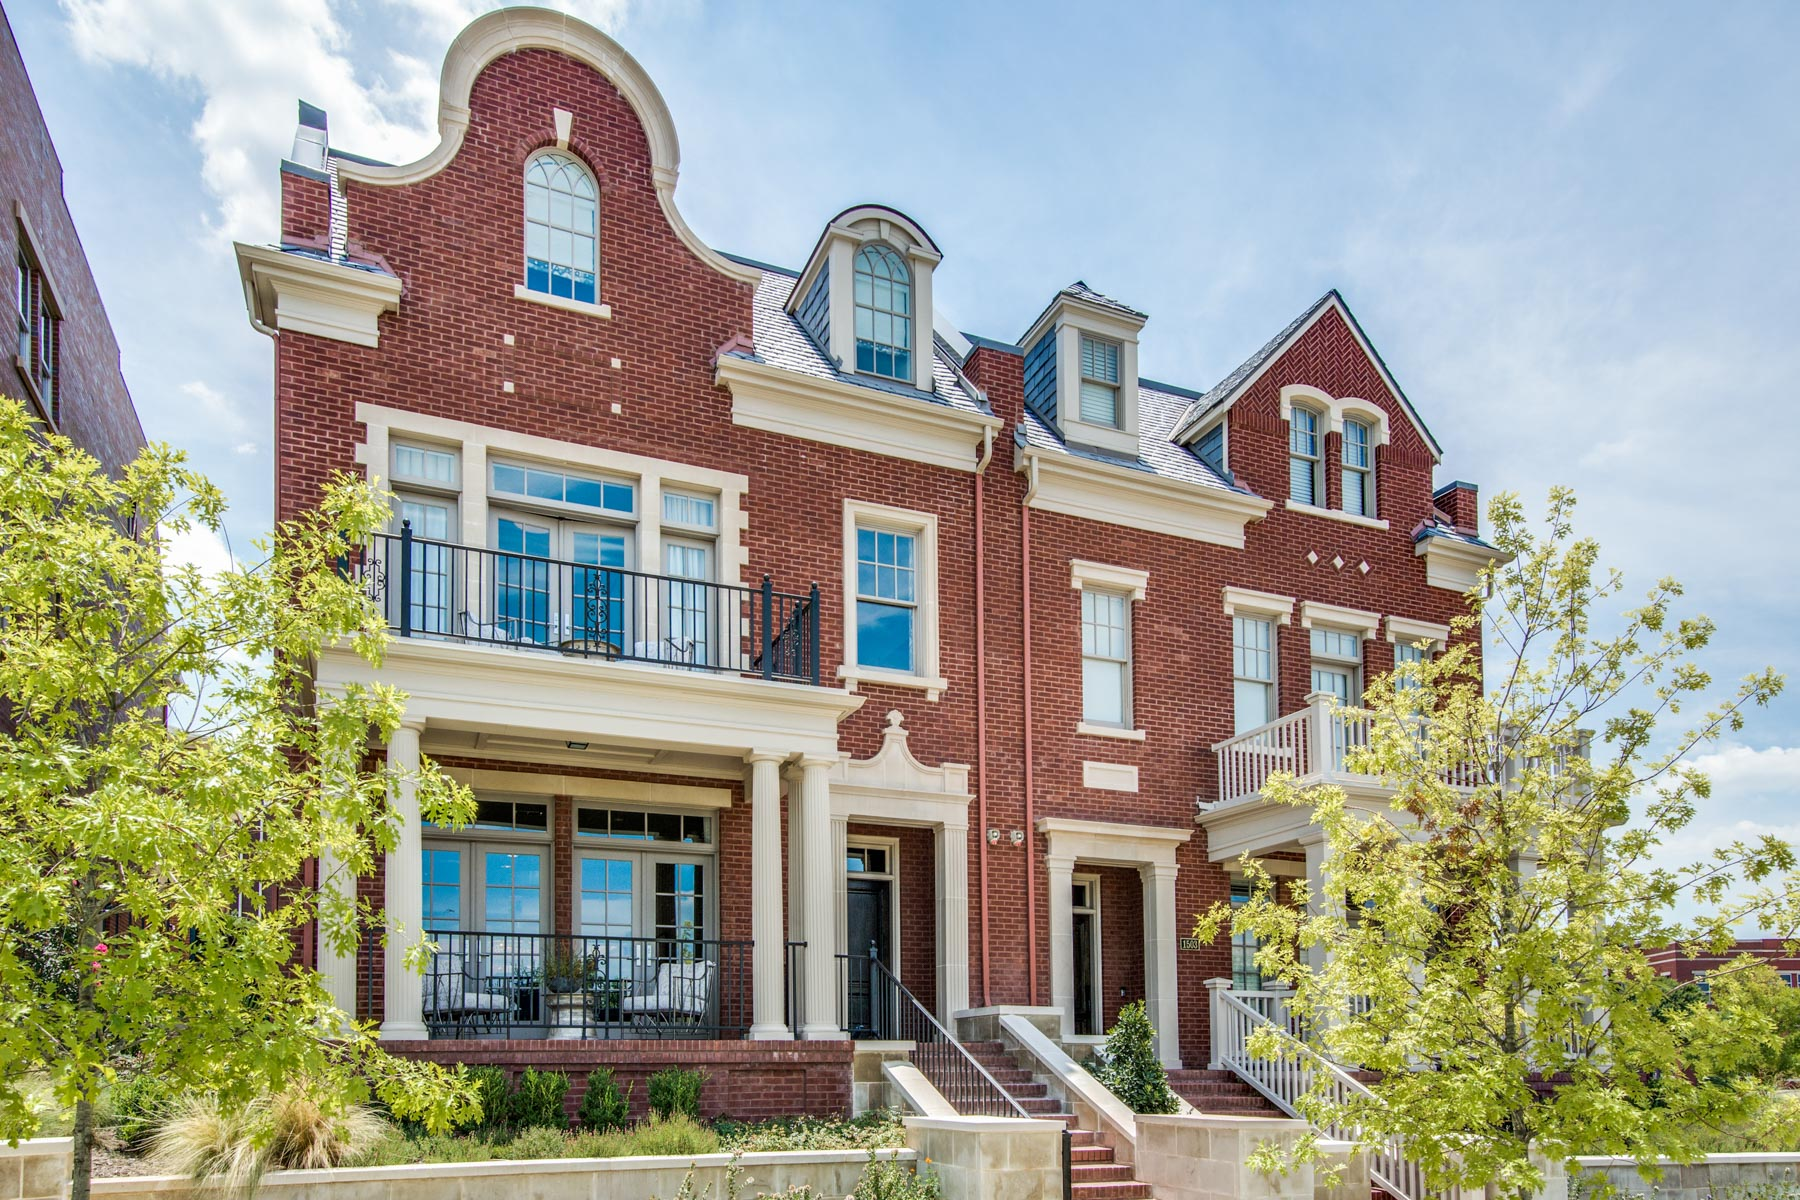 Single Family Home for Sale at Meeting Street Brownstone 1505 Meeting St Southlake, Texas 76092 United States